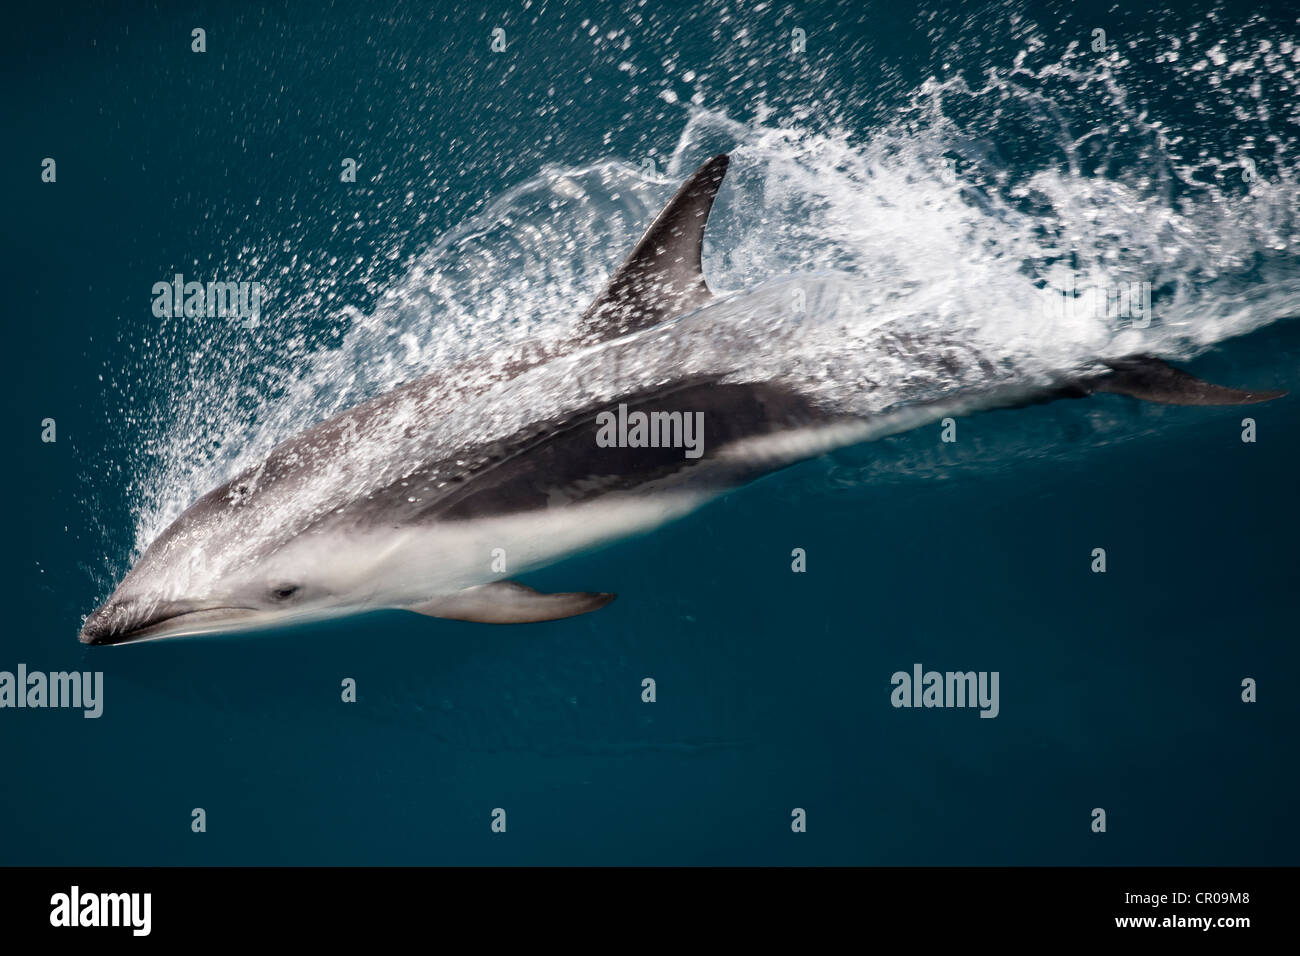 Dusky dolphin swimming at water surface - Stock Image